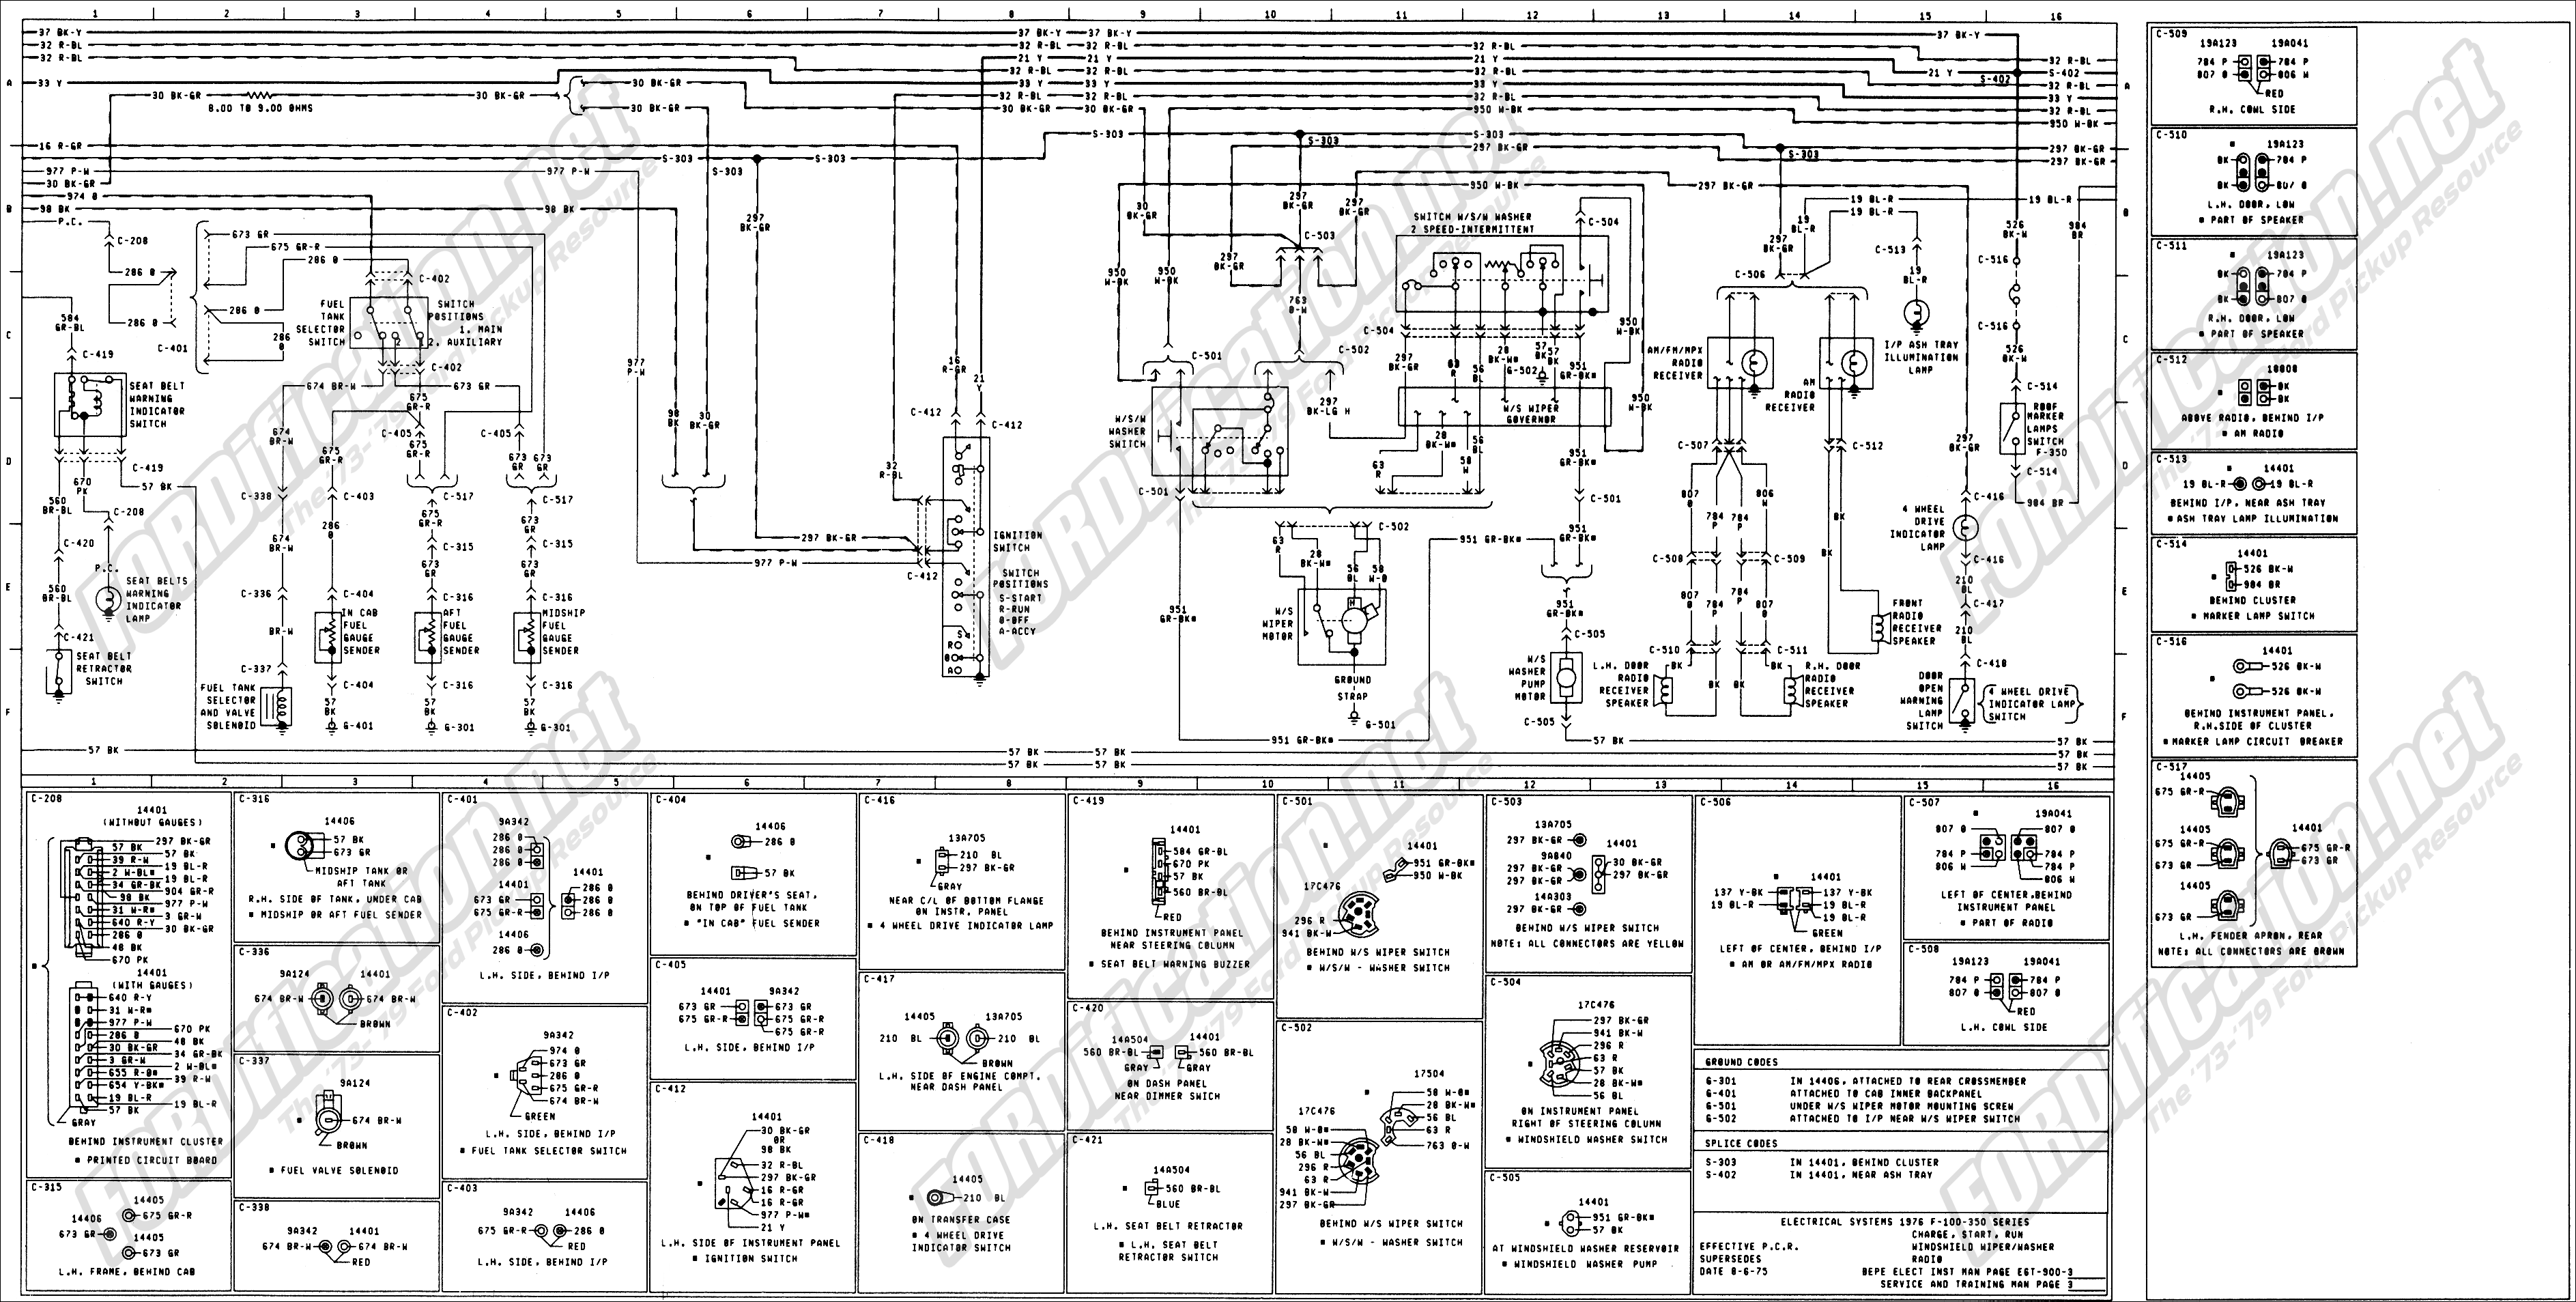 06 Crown Vic Fuse Box Diagram Wiring Library 1998 Honda Civic Dx Radio 1973 1979 Ford Truck Diagrams Schematics 1999 Expedition 2004 Victoria